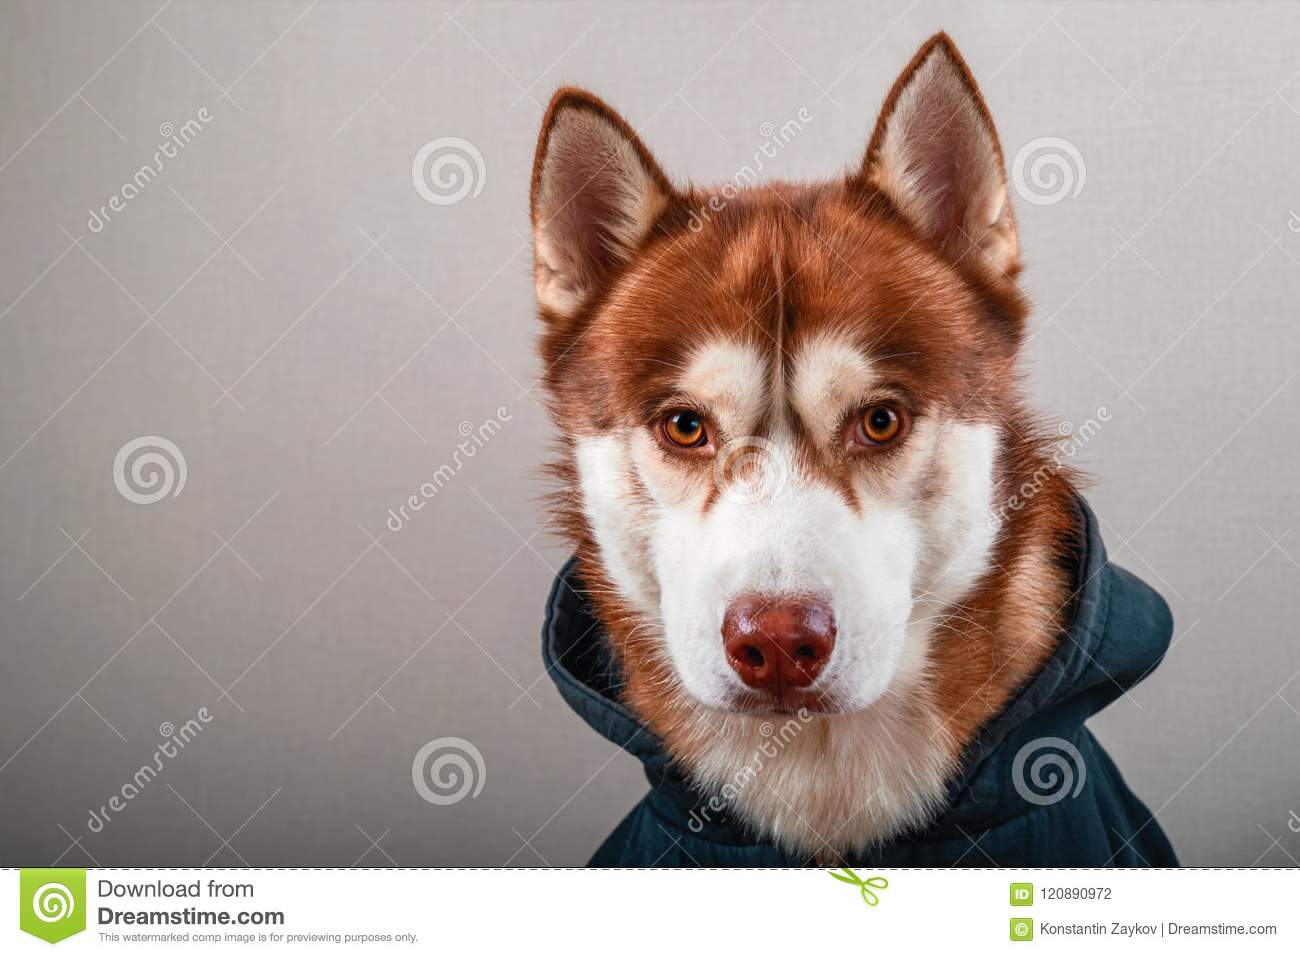 Portrait husky dog in black hoodie on Isolated gray background. Red siberian husky in sweatshirt looks at camera front view.